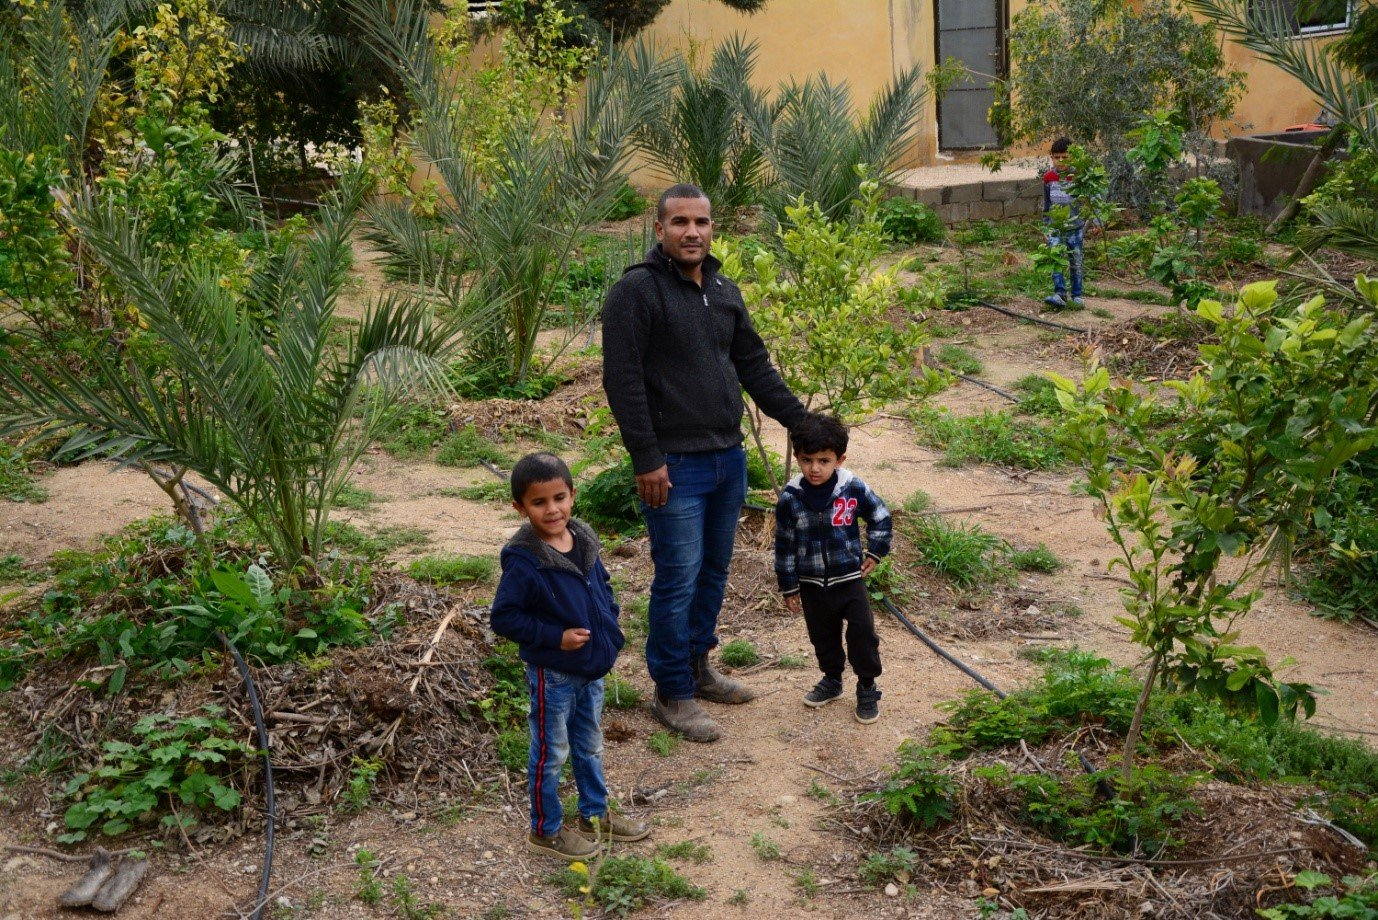 Hayel Abu Yahya and his family manage Greening the Desert's farm. (Marta Vidal/MEE)